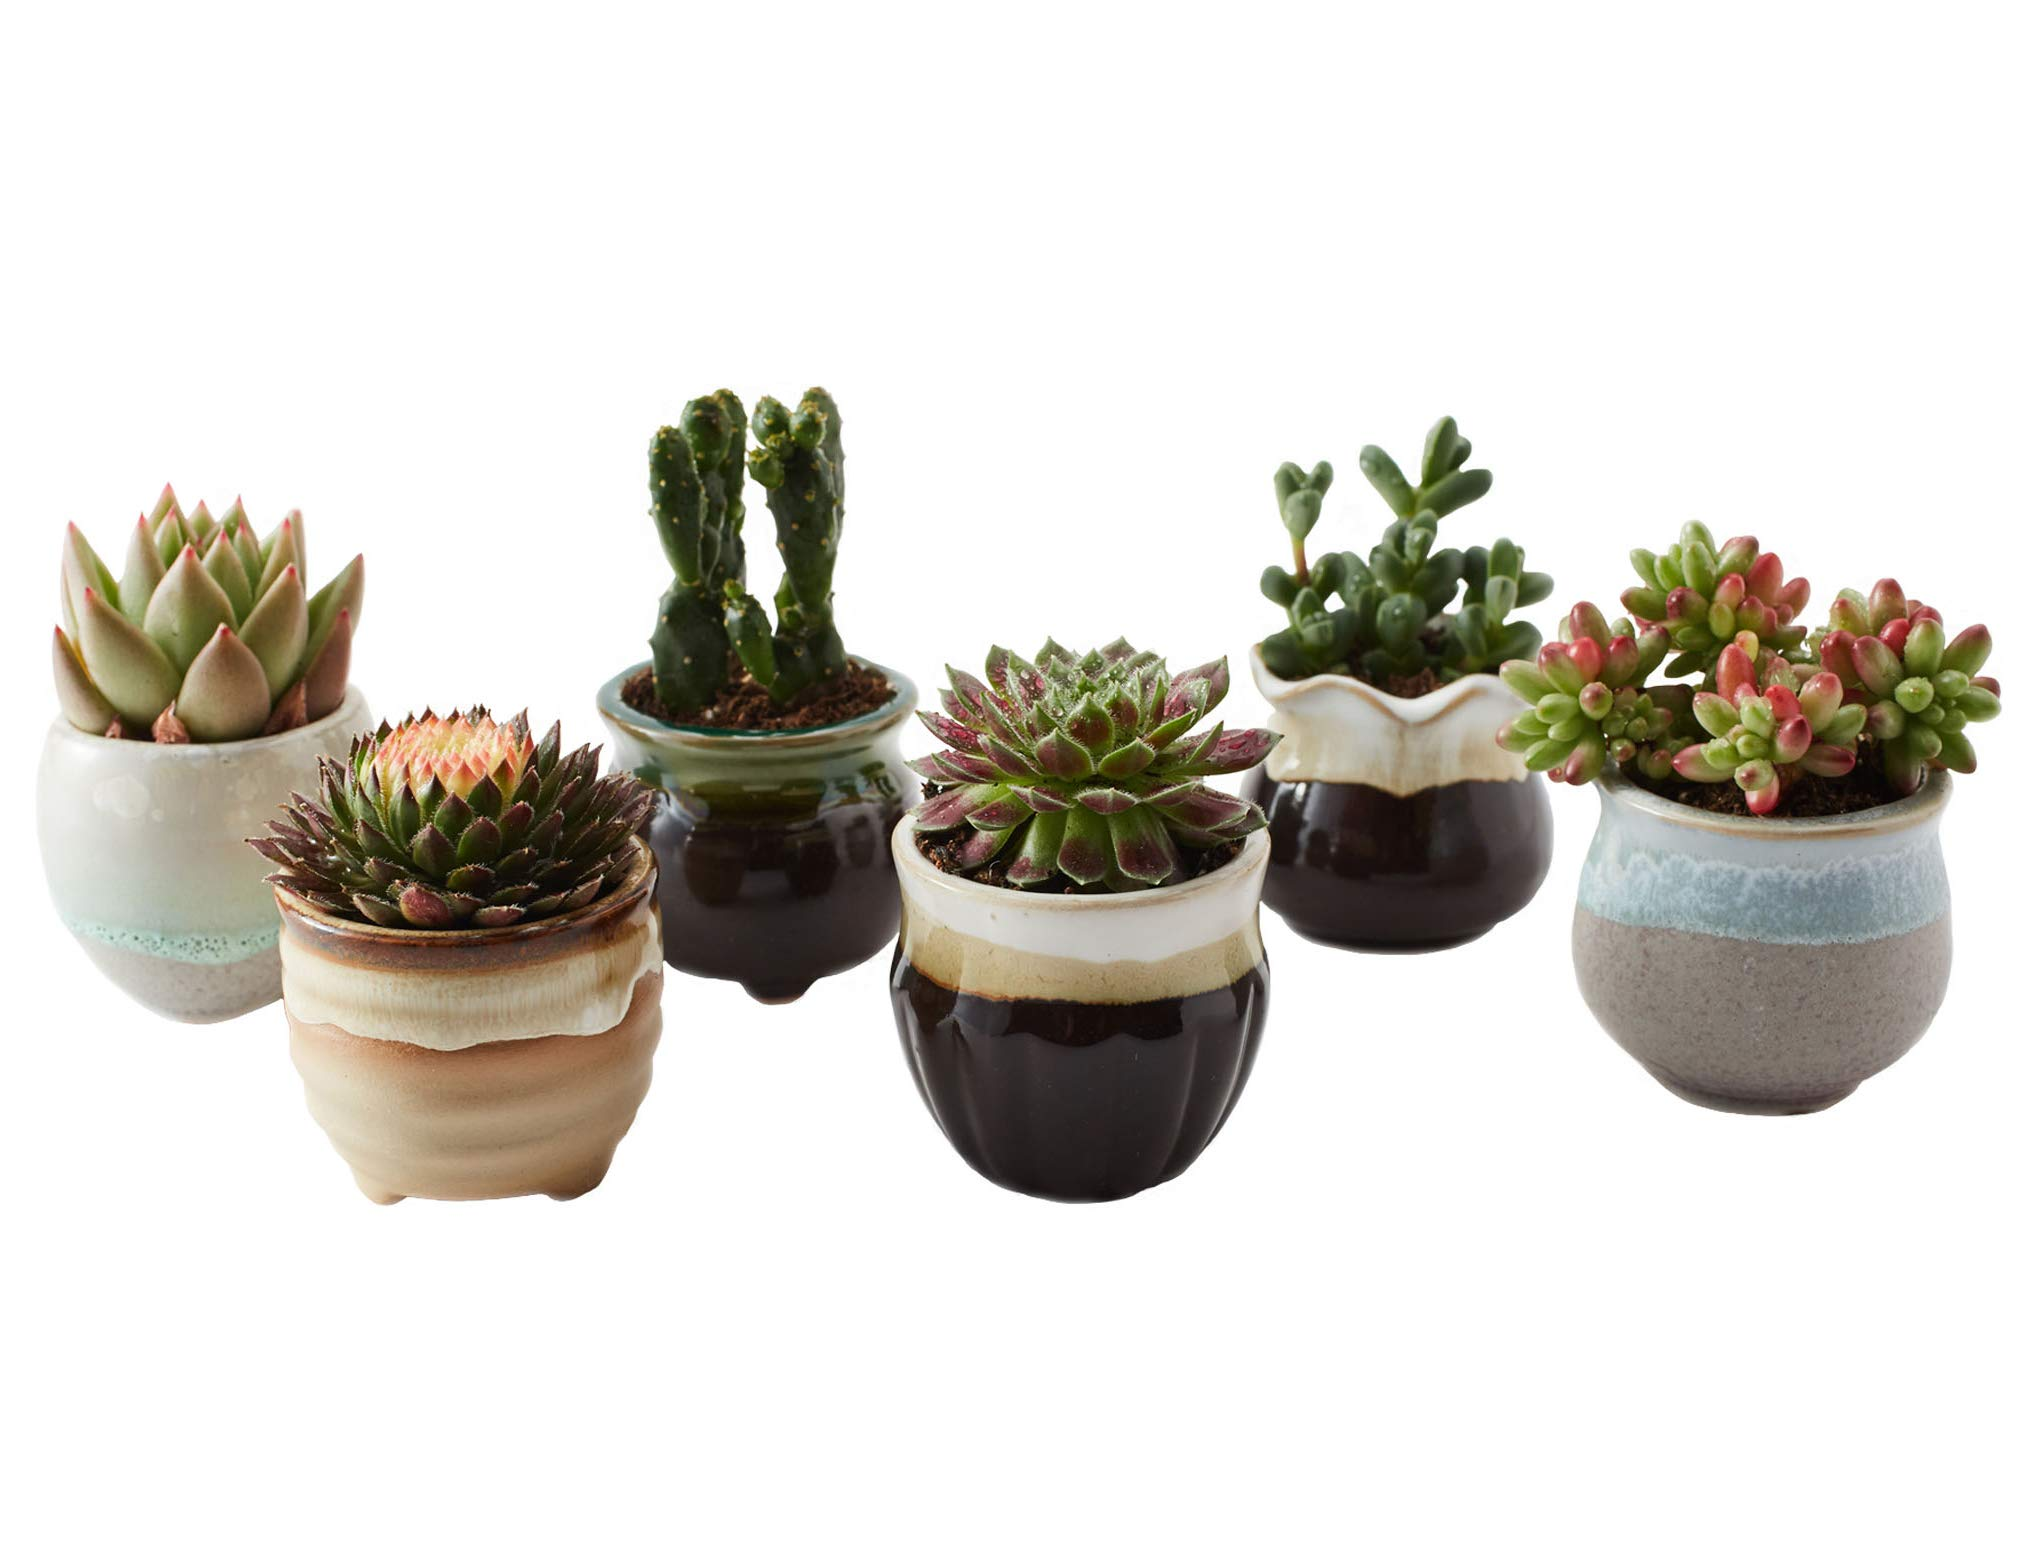 SUN-E 6 in Set 2.5 Inch Ceramic Flowing Glaze Black&White Base Serial Set Succulent Plant Pot Cactus Plant Pot Flower Pot Container Planter Perfect Gife Idea by SUN-E